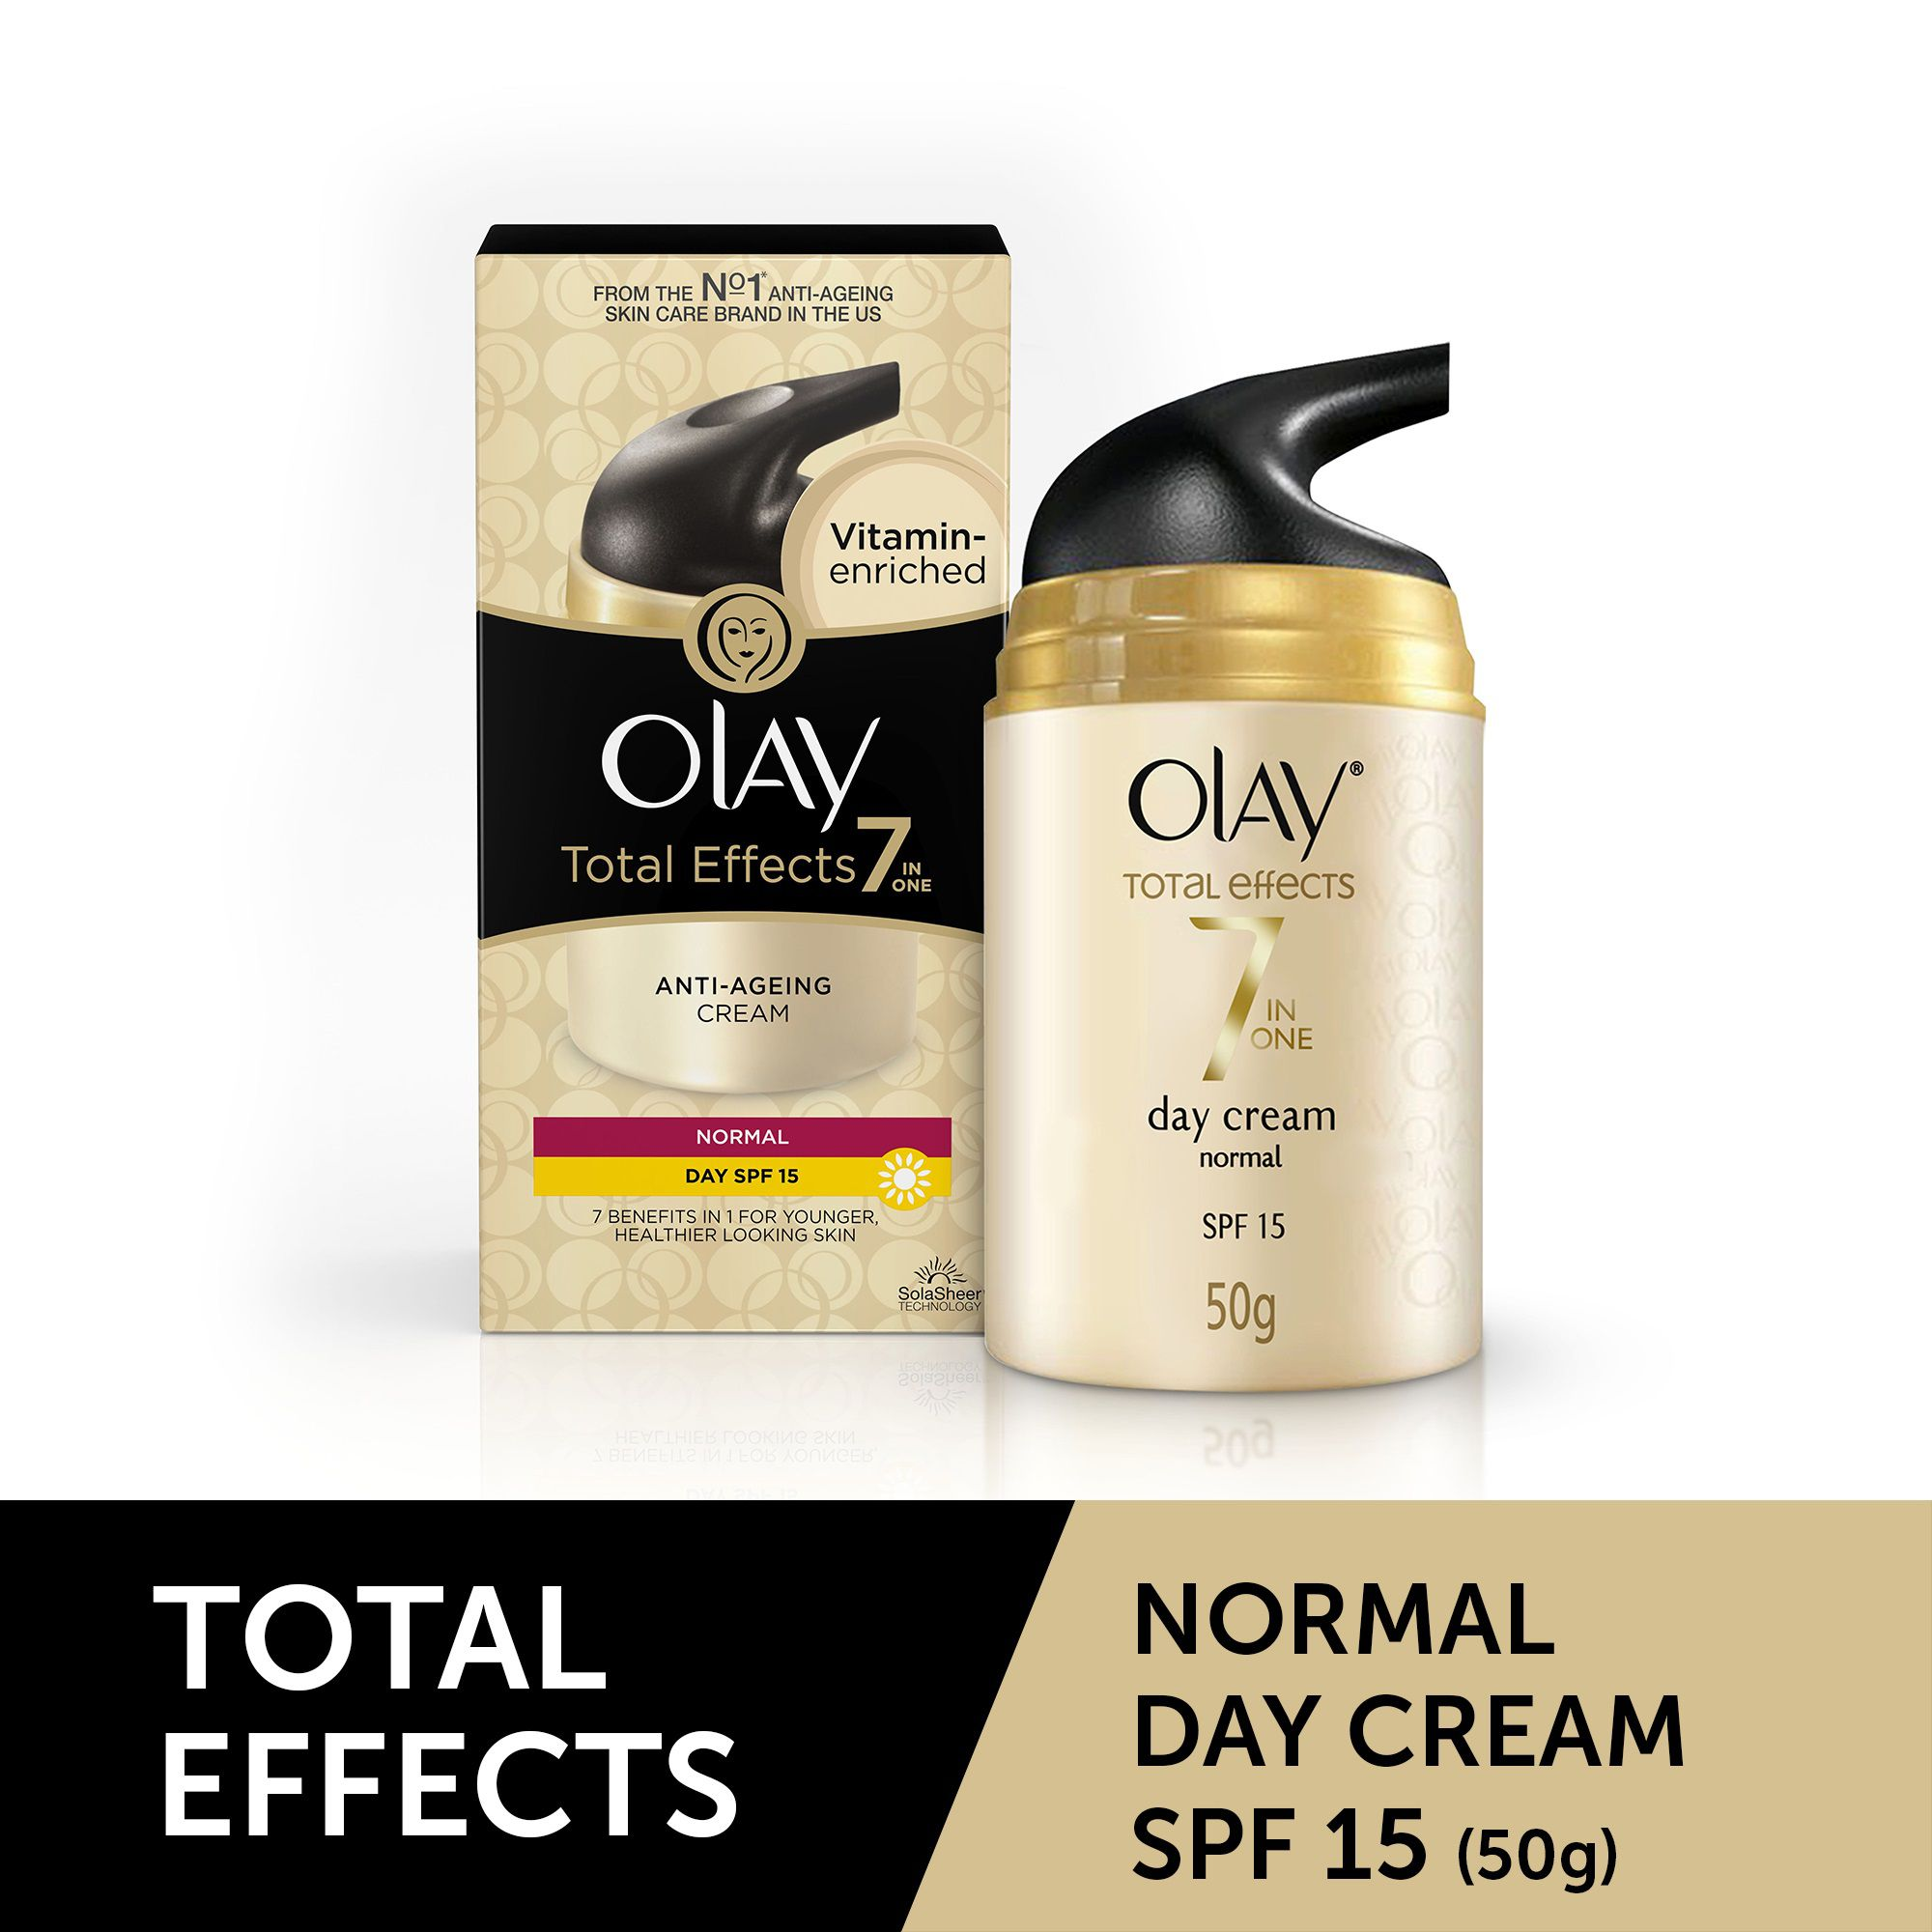 olay total effects 7in1 anti aging daily moisturizer review